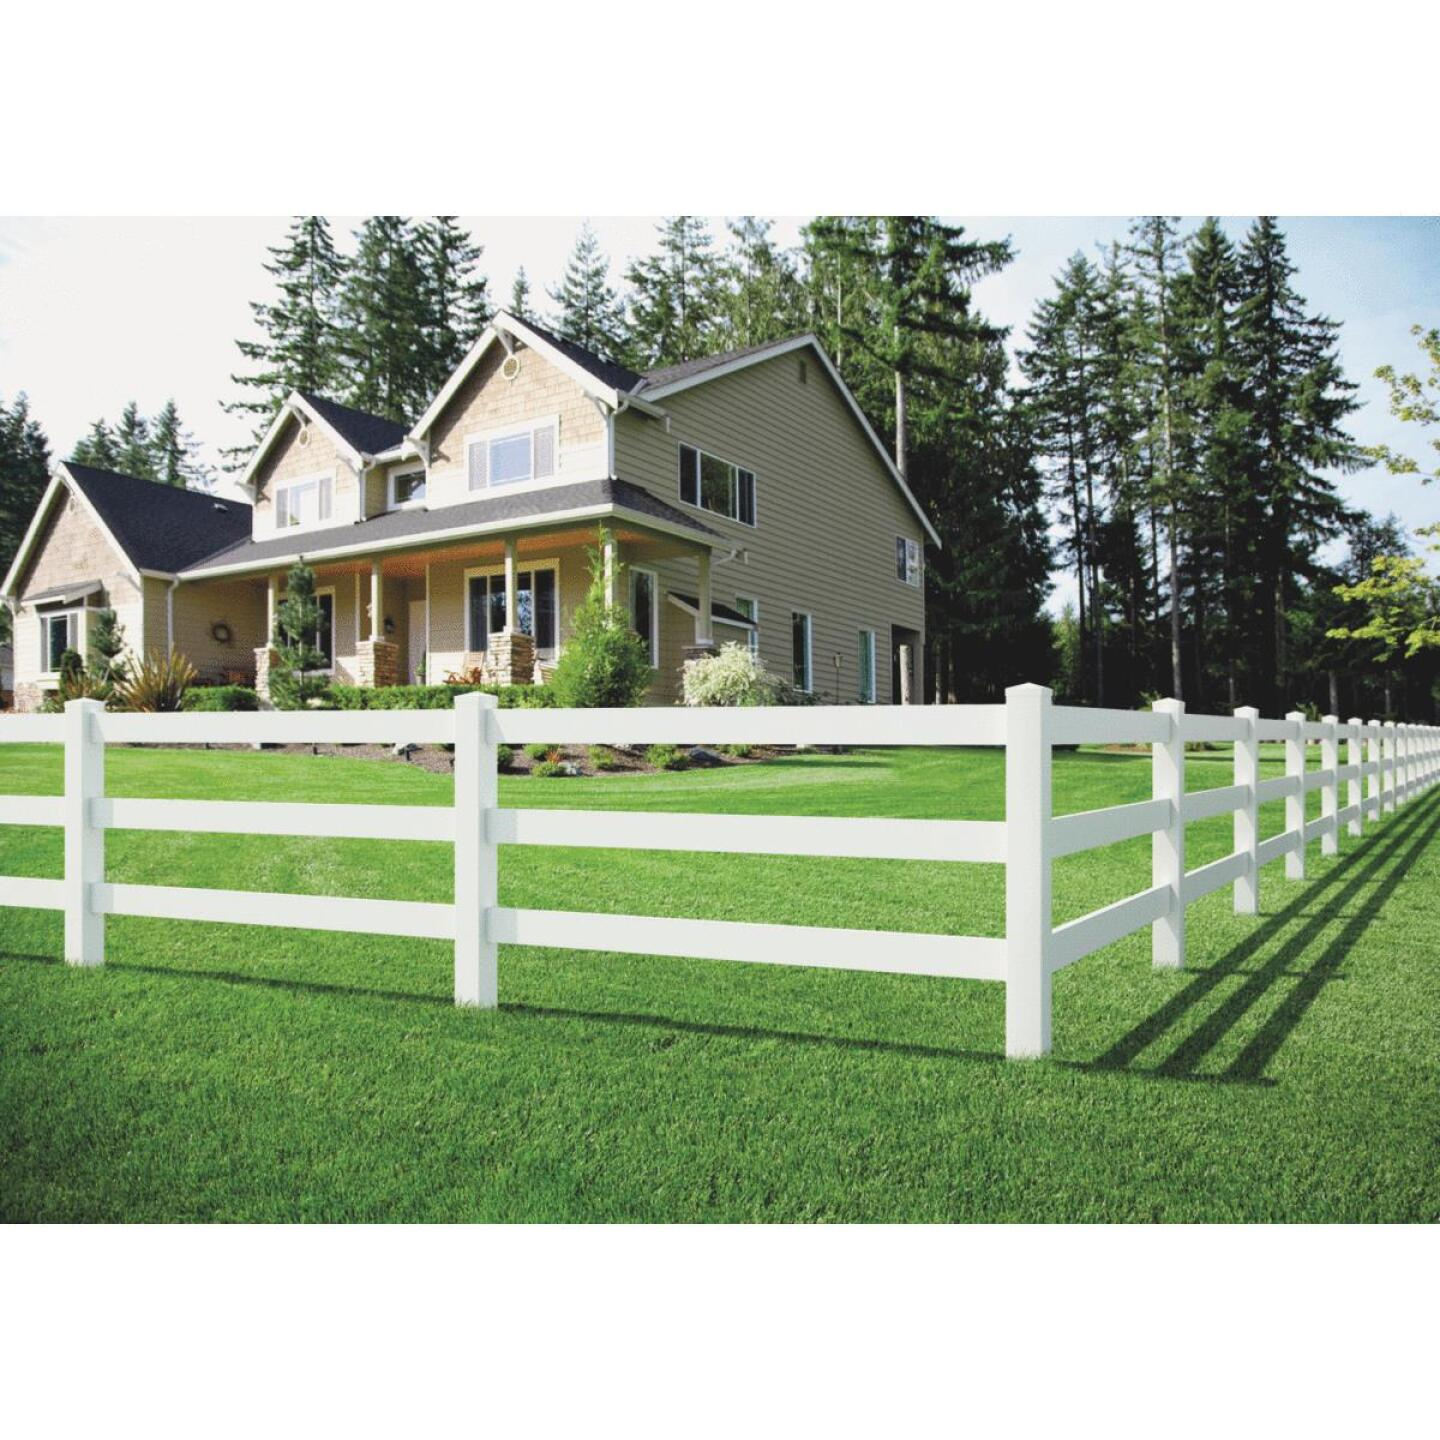 Outdoor Essentials 5 In. x 5 In. x 60 In. White Line 2-Rail Fence Vinyl Post Image 6